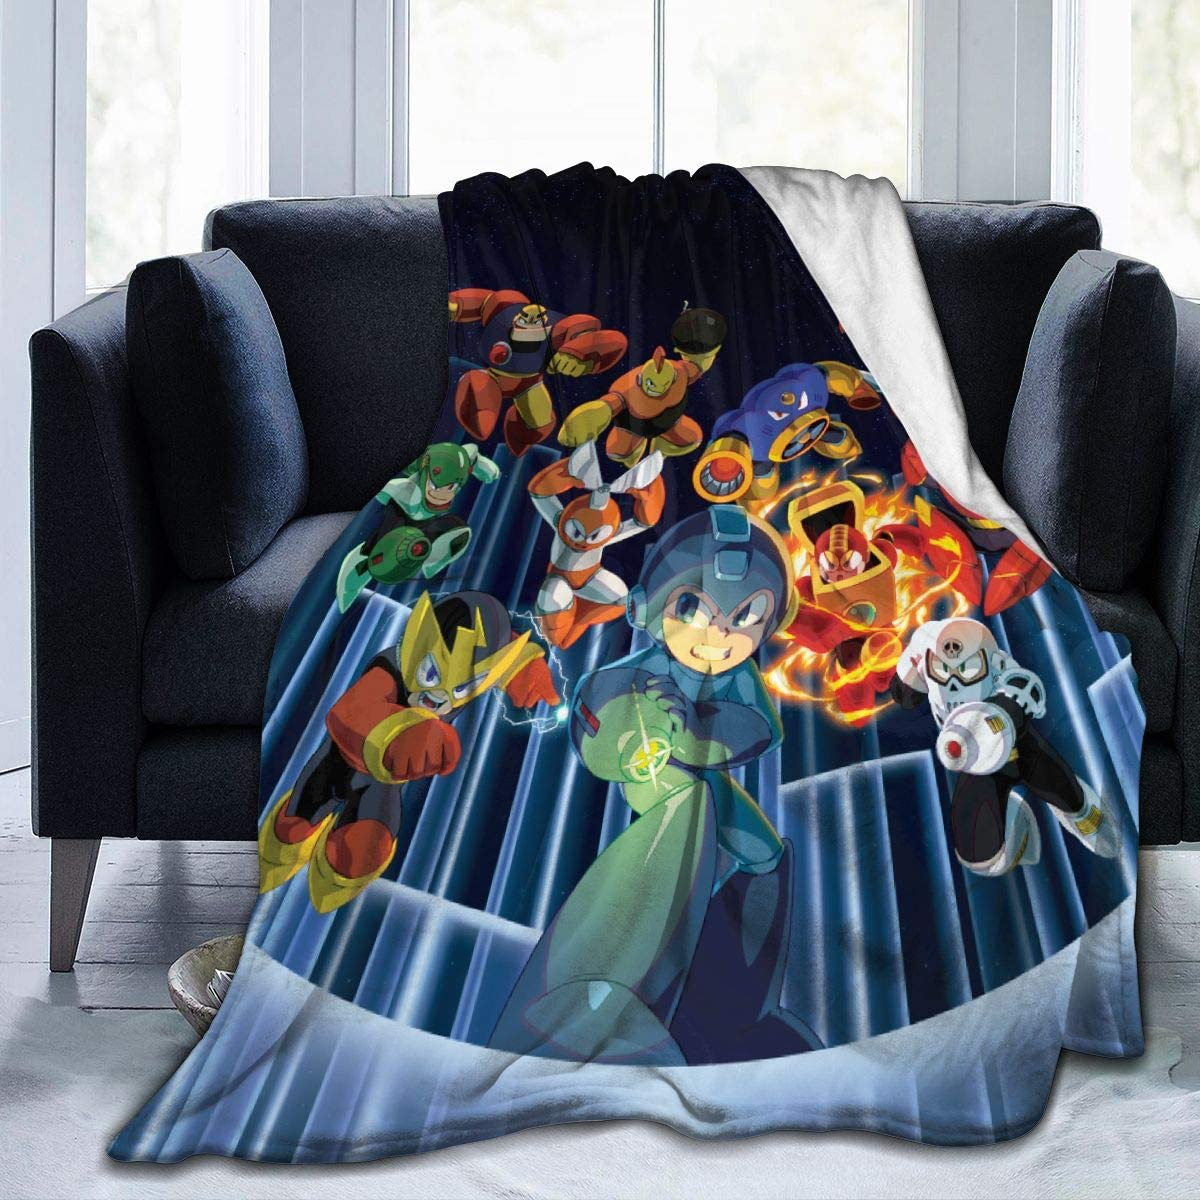 "WWSSTTOO Mega-Man-Legacy Flannel Fleece Plush Throw Blanket Ligtweight Cozy Bed Couch Thin Blanket 3D Print for Boys Girls 50"""" x40"